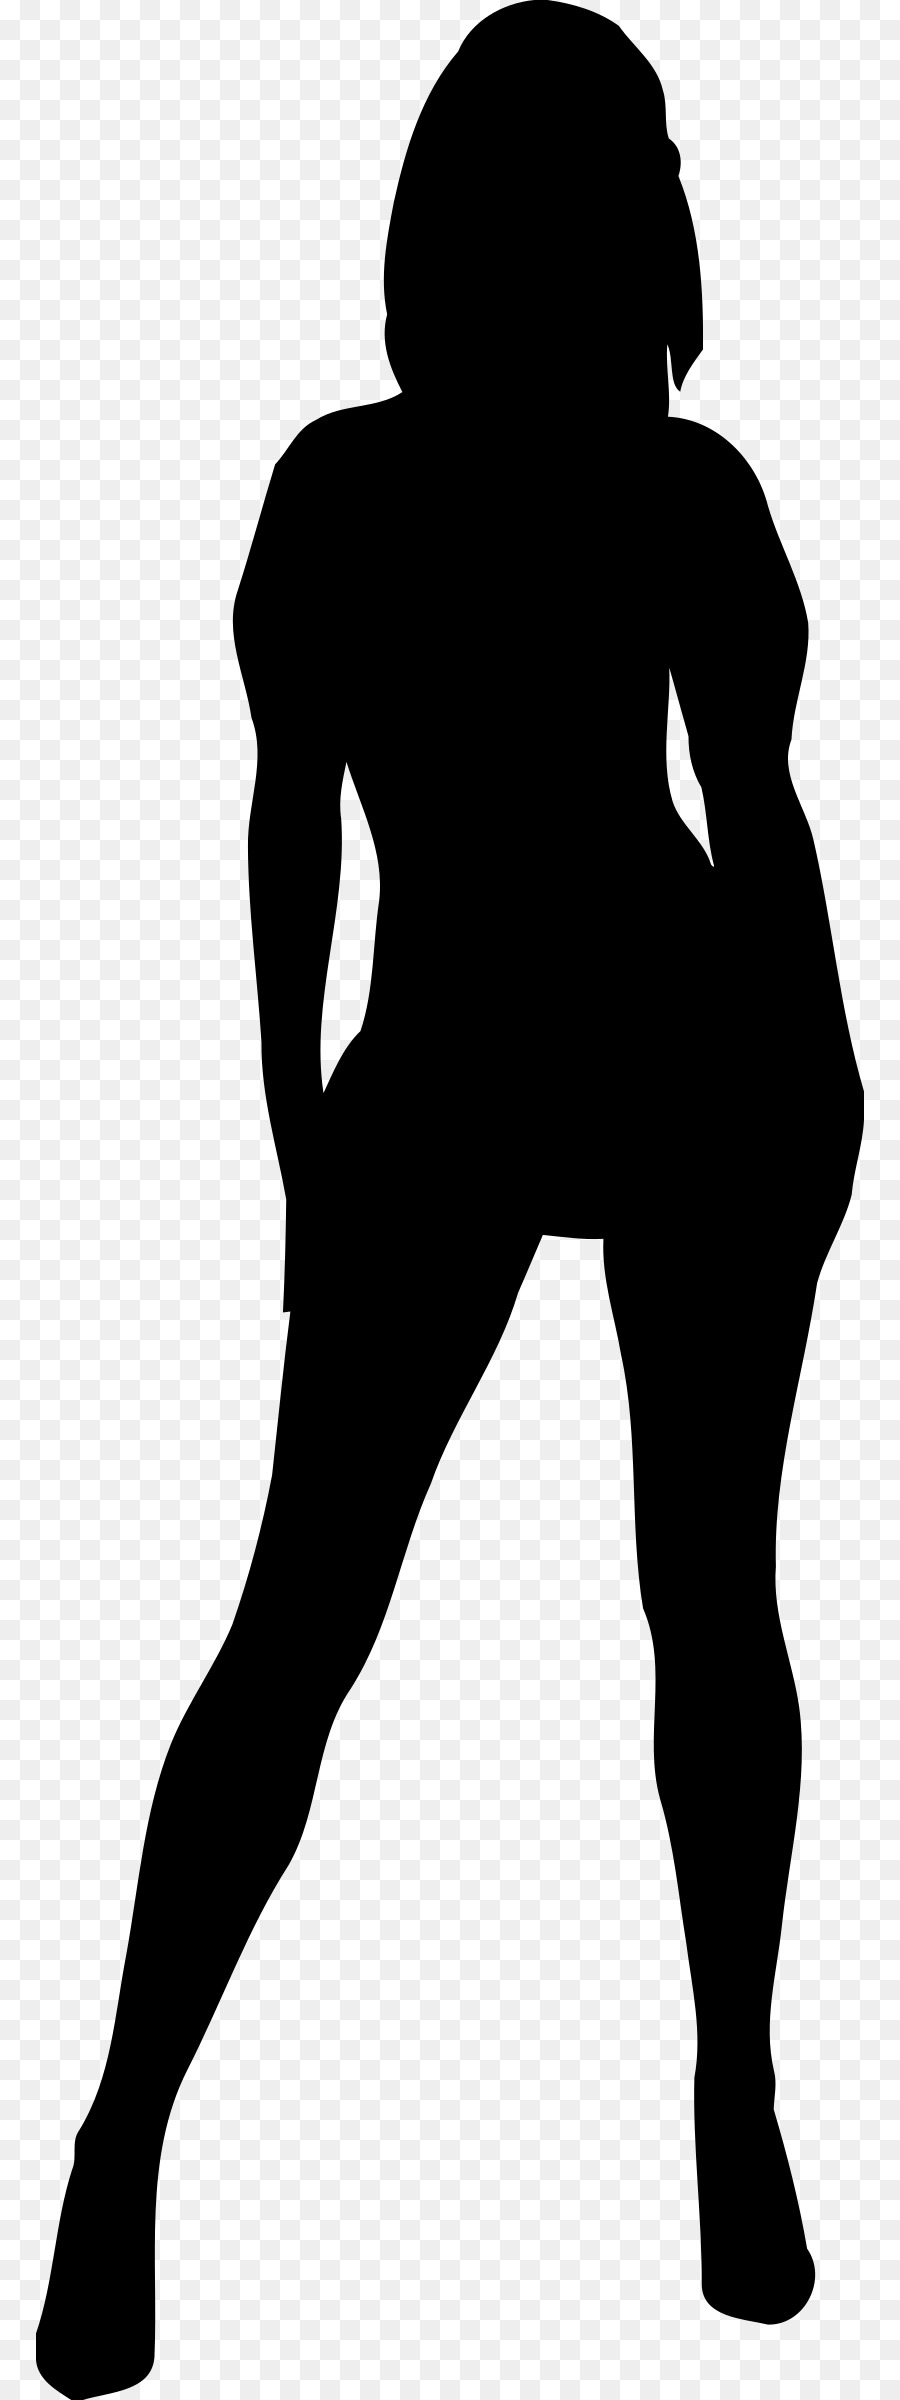 Teenage girl silhouette clipart graphic black and white library Free Teenage Girl Silhouette, Download Free Clip Art, Free ... graphic black and white library